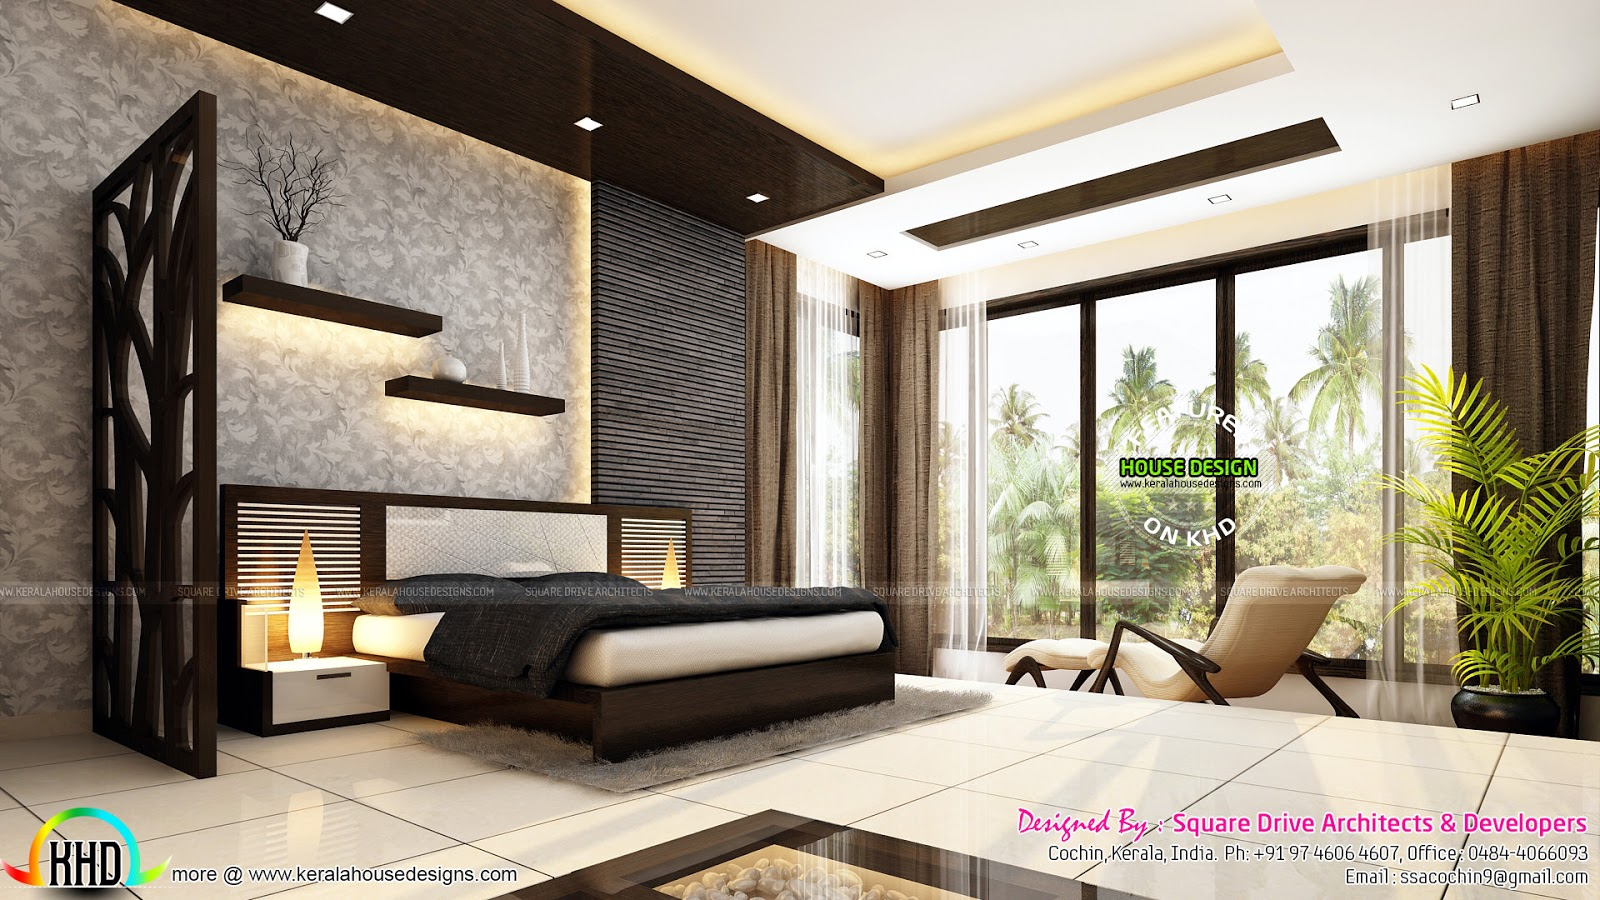 very beautiful modern interior designs kerala home amazing master piece of home interior designs home interiors